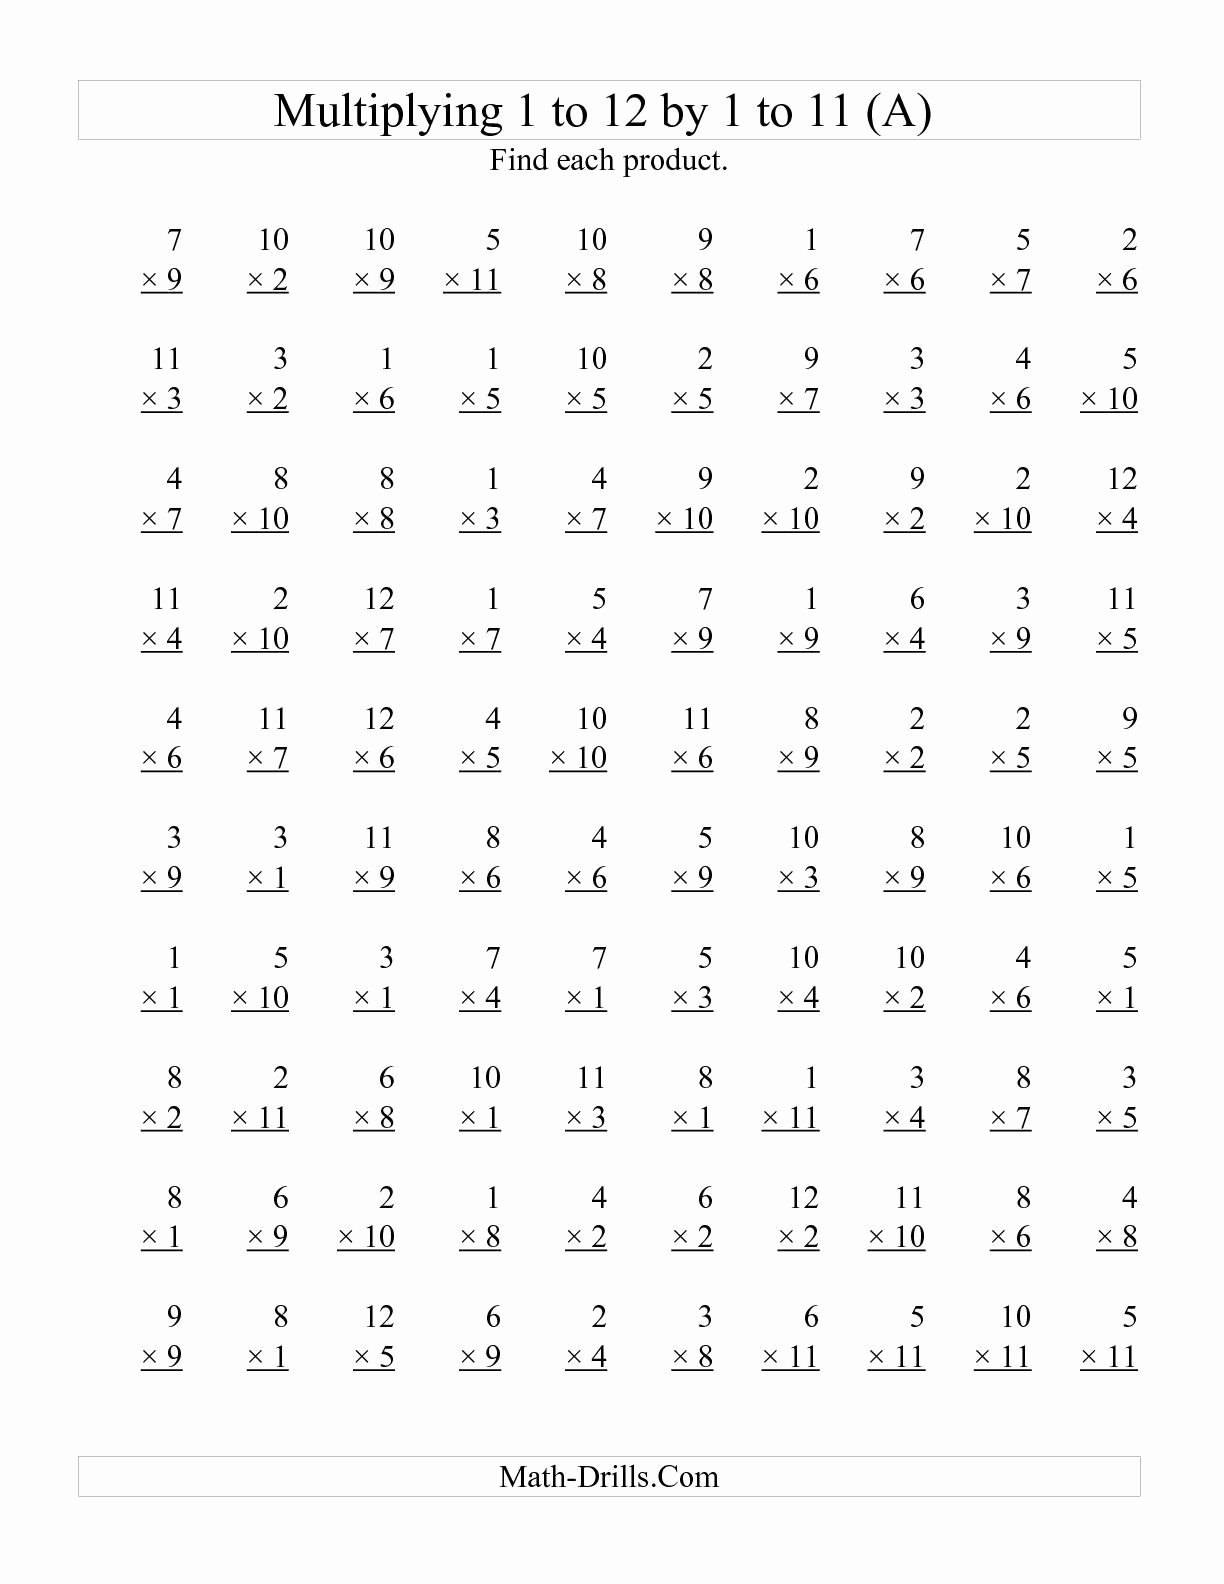 Multiplication Worksheets to 12 Awesome the 100 Vertical Questions Multiplying 1 to 12 by 1 to 11